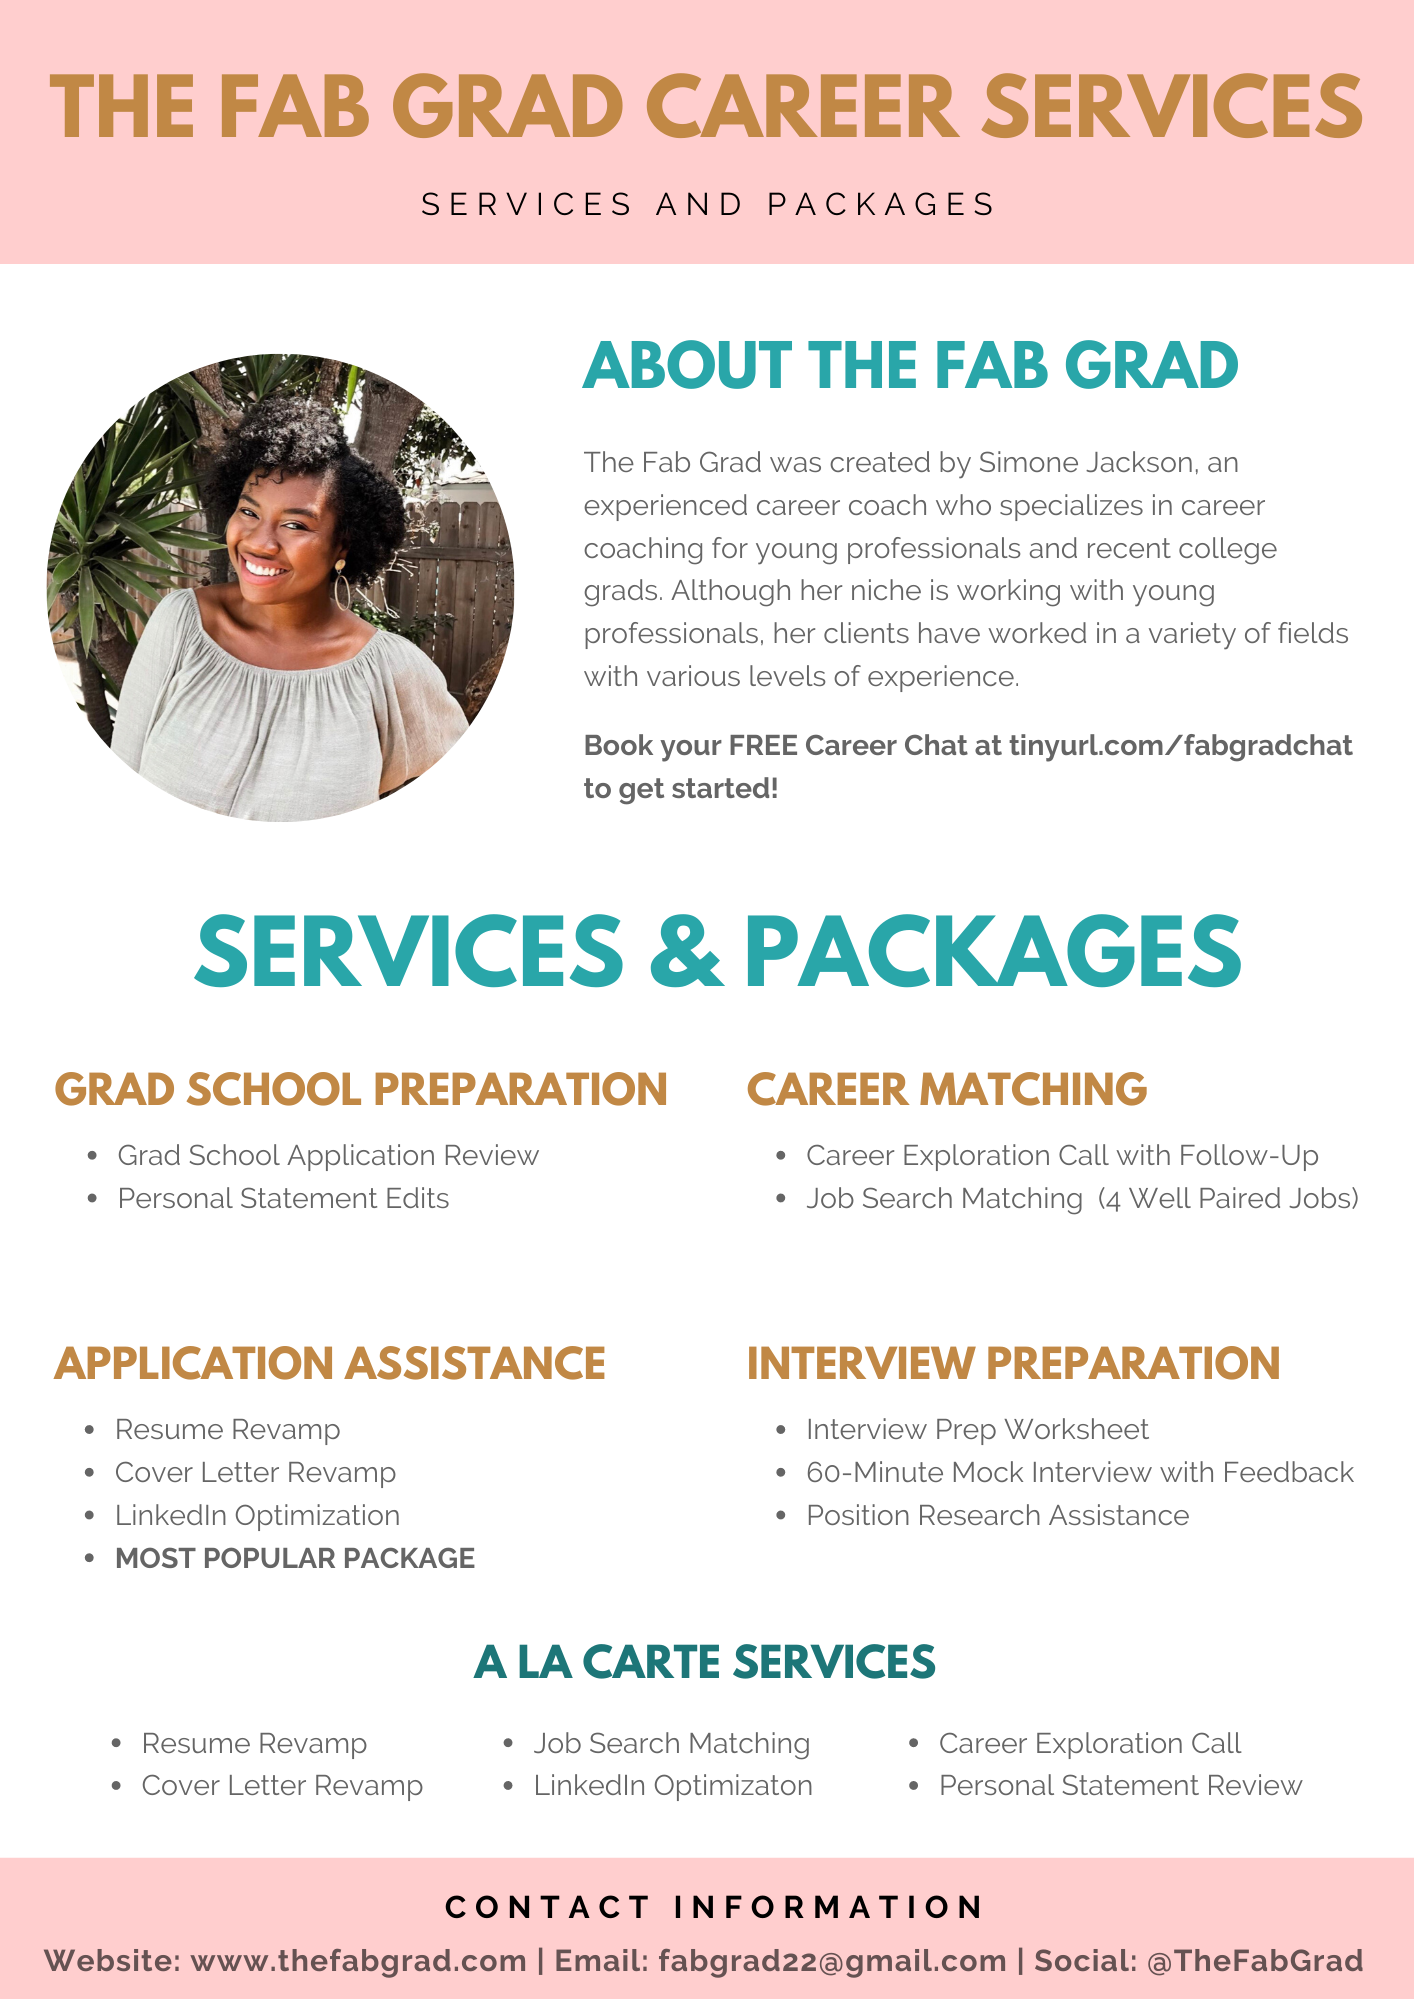 The Fab Grad Career Services